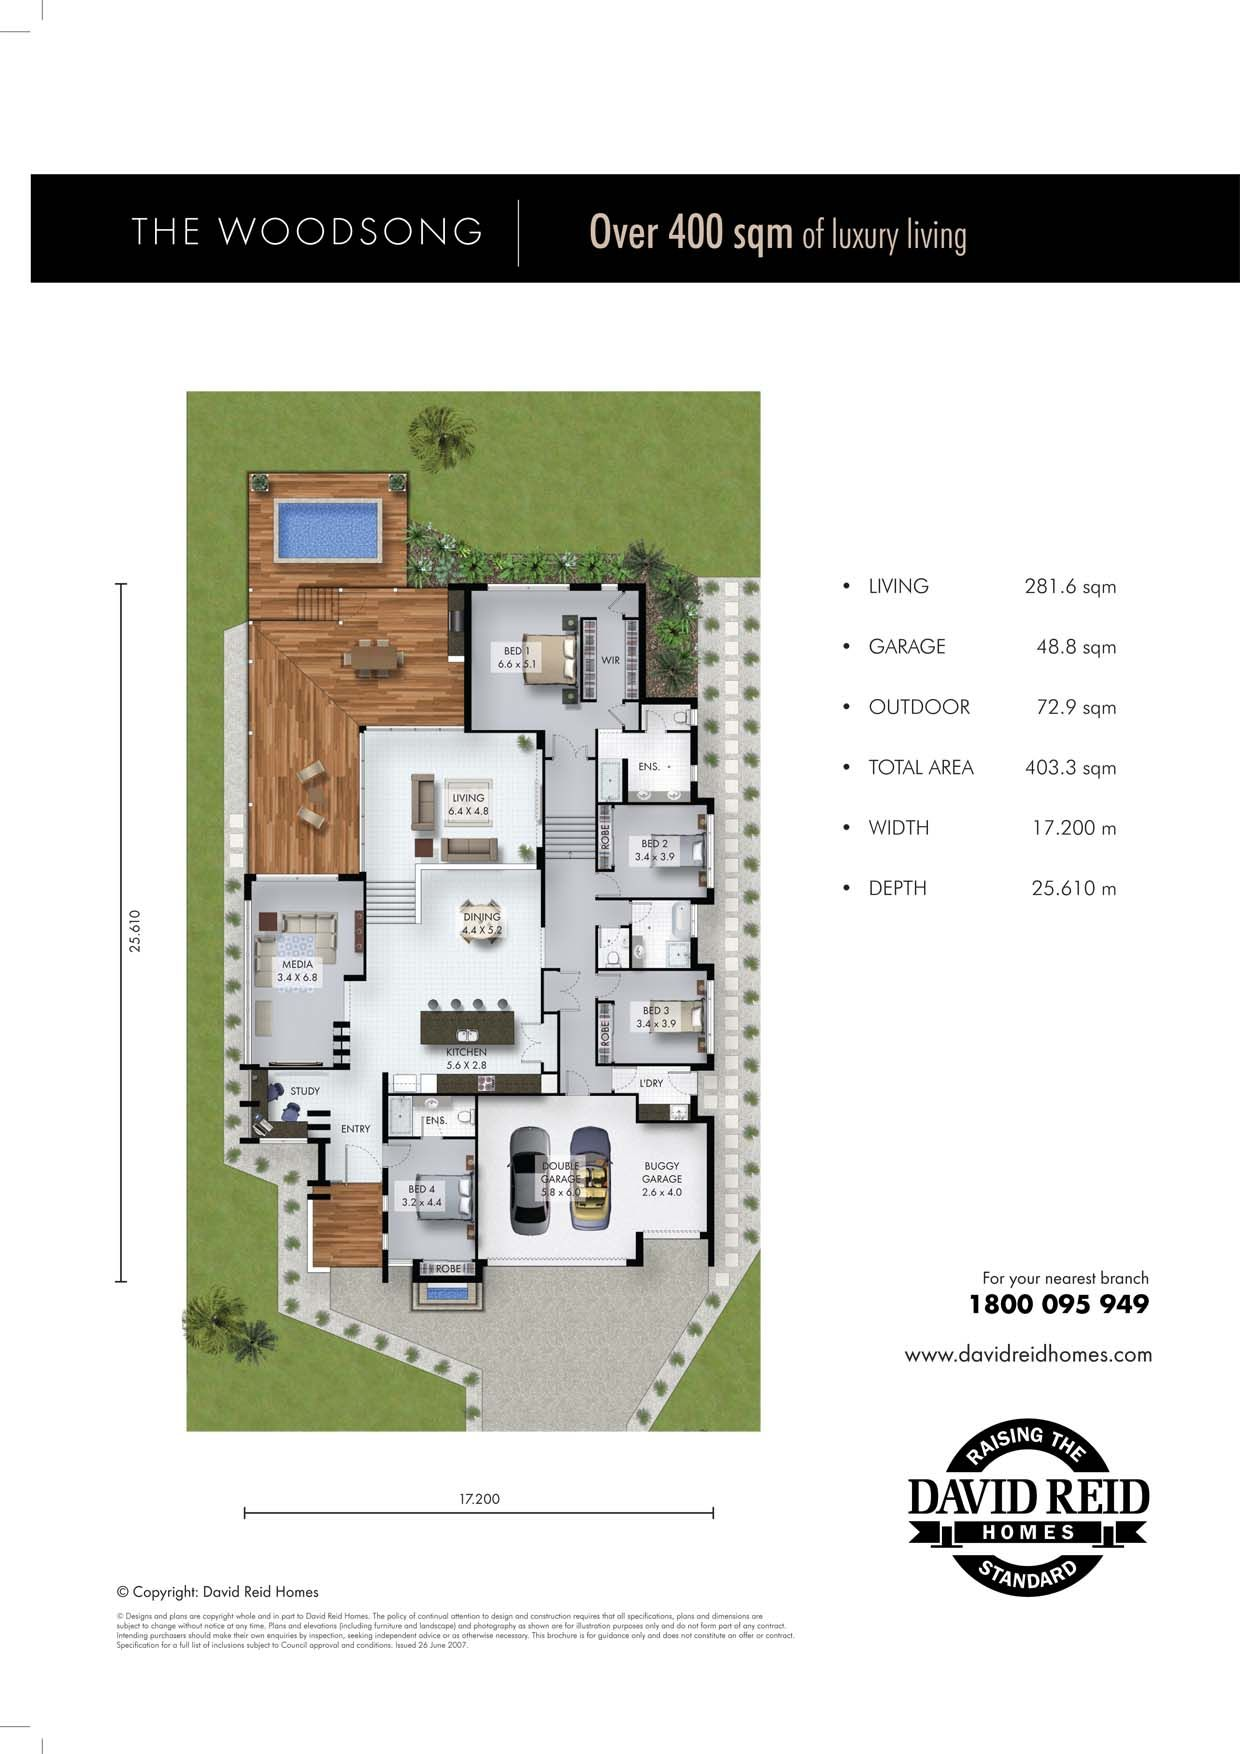 The Woodsong Floor Plan Concept Range David Reid Homes Australia Luxury Custom Home Builder